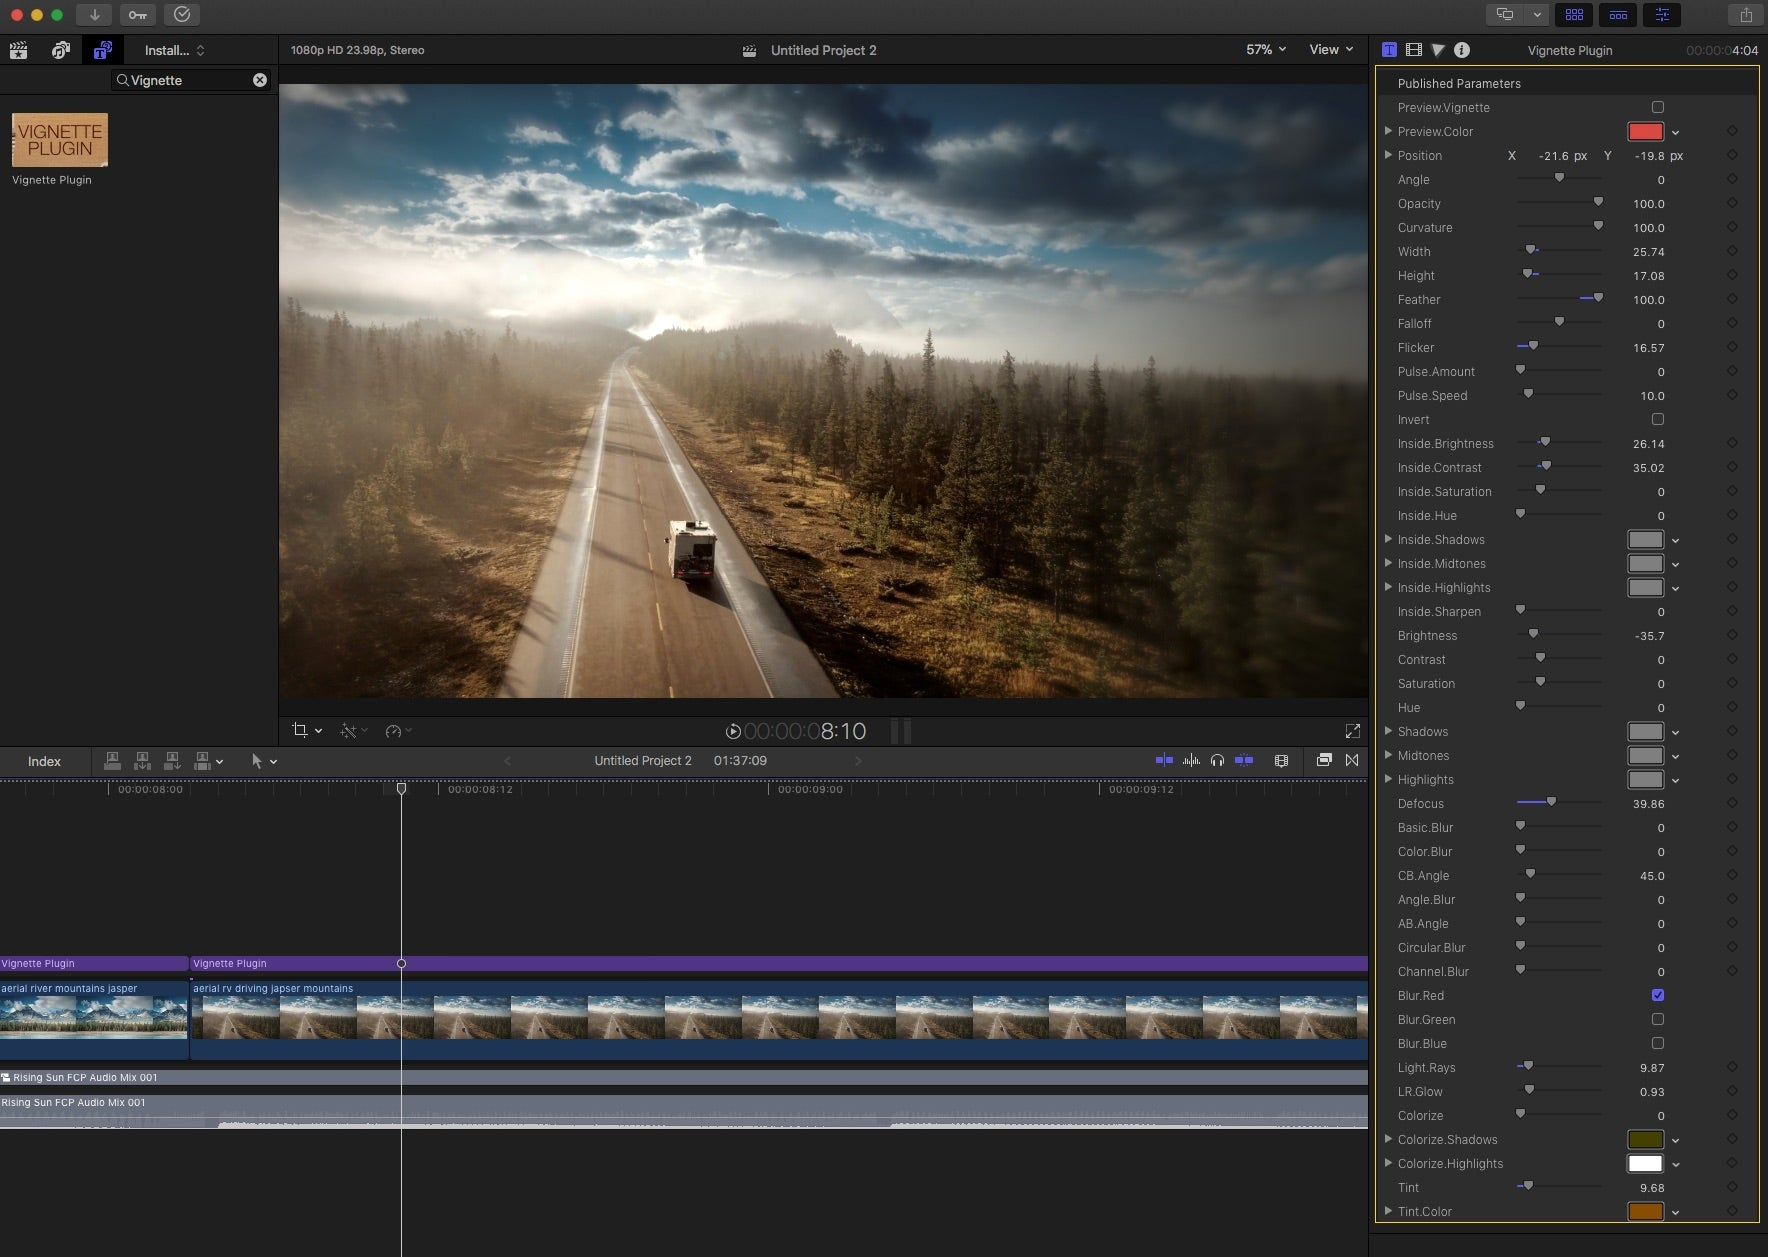 Vignette Plugin - FCPeffects: Final Cut Pro Plugins